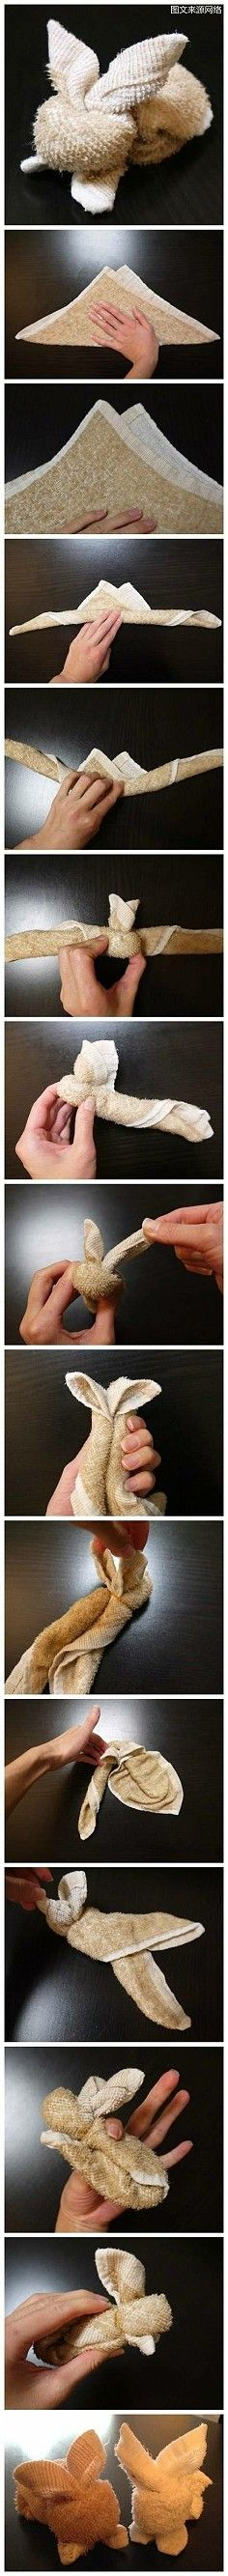 DIY: bunny towels  ******* website full